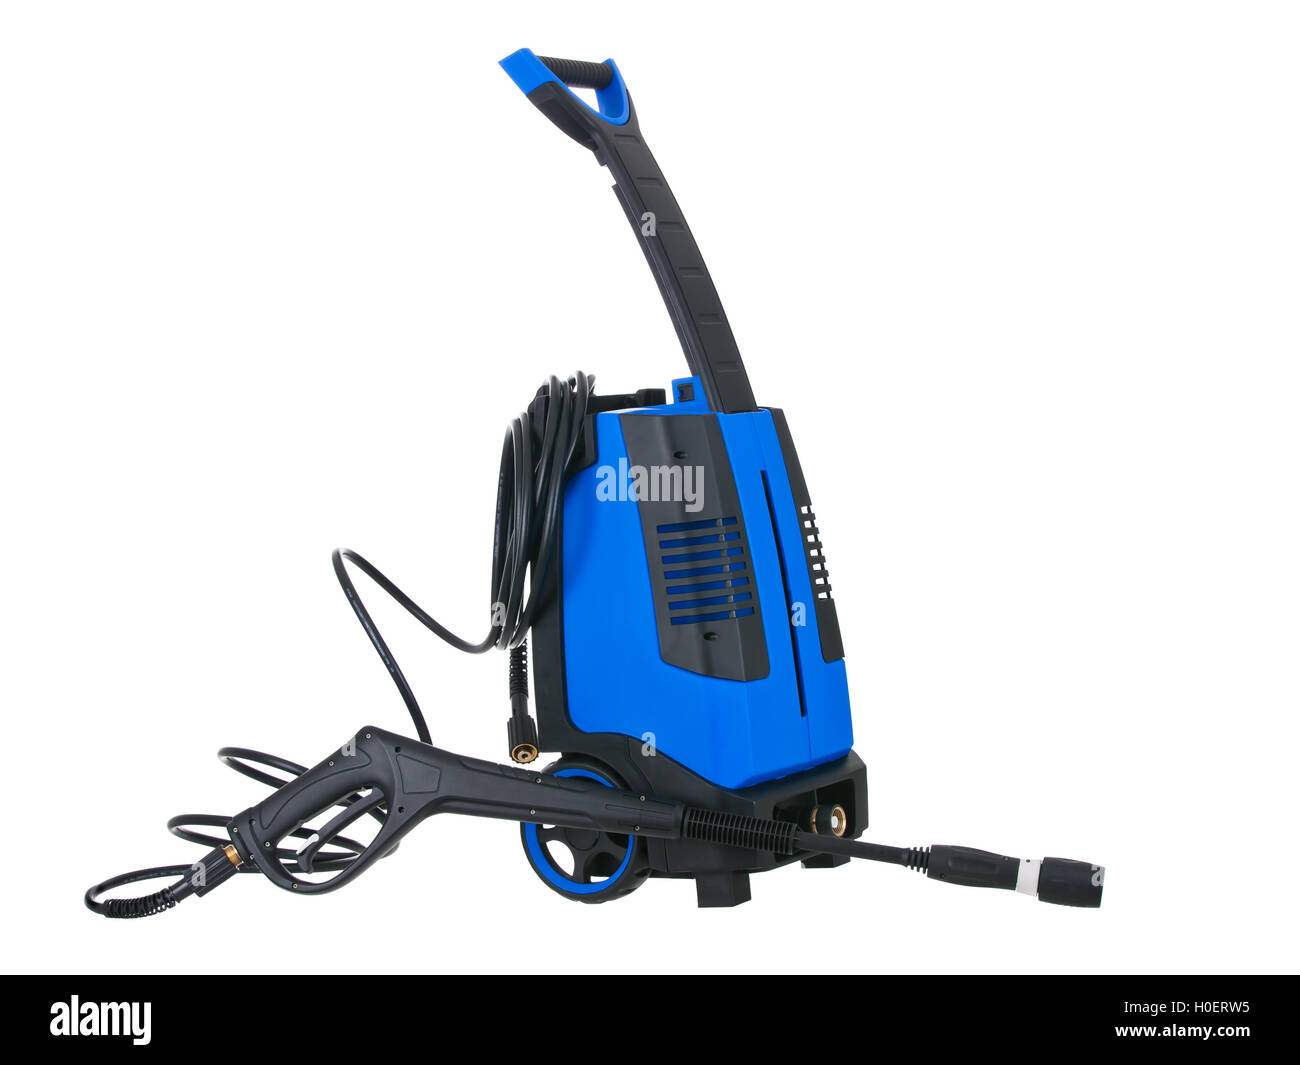 Blue pressure portable washer with hose on pure white background - Stock Image